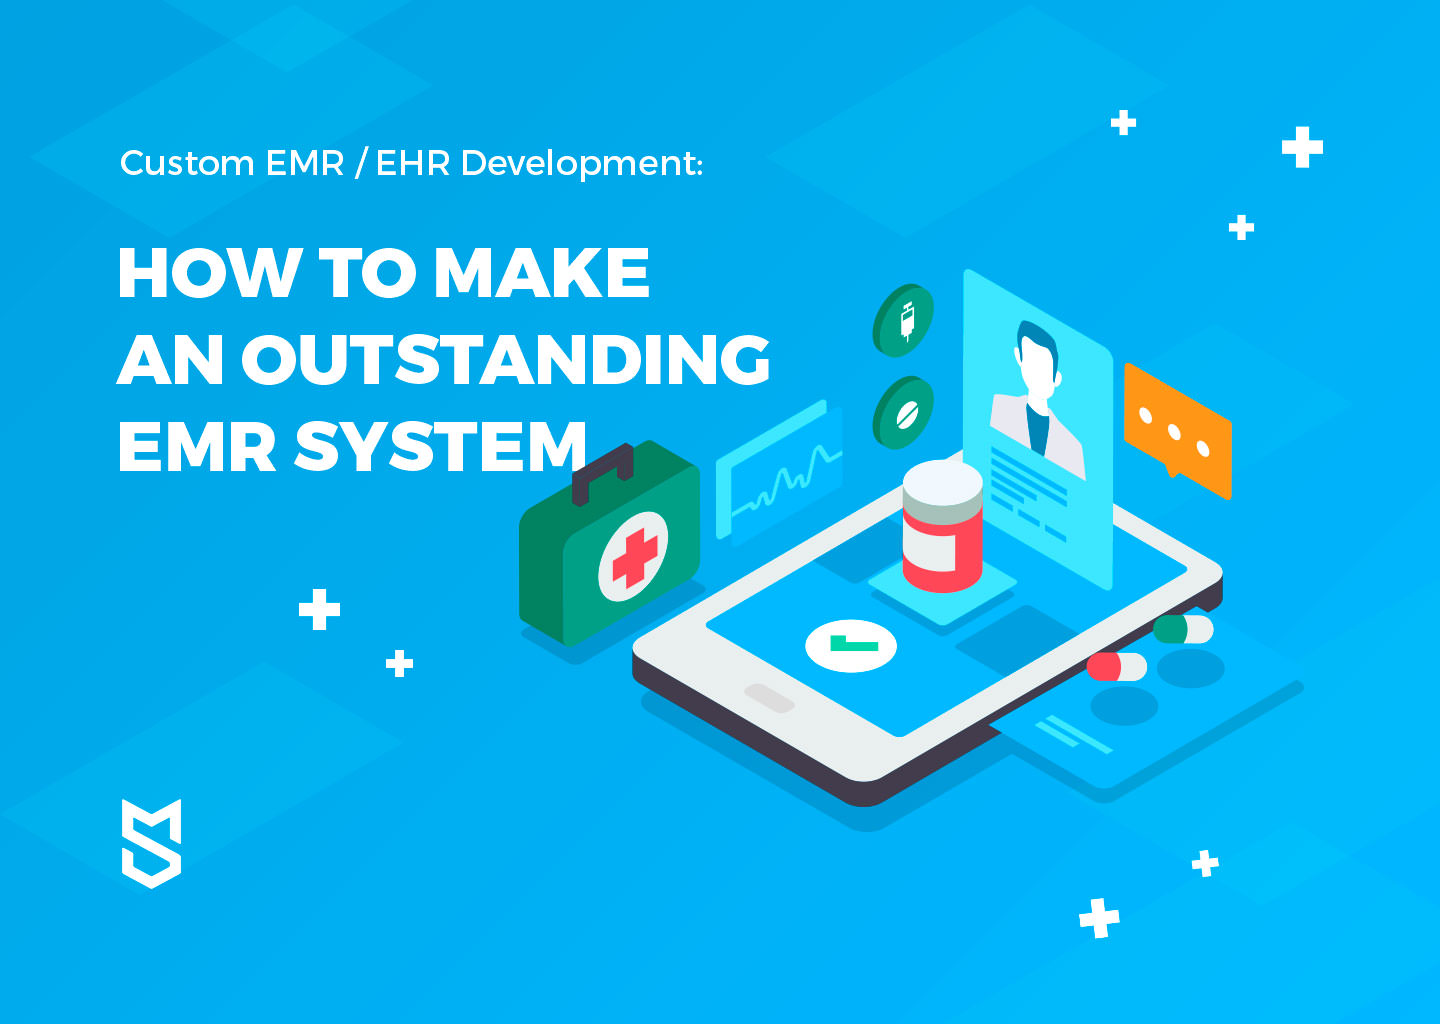 Custom EMR/EHR Development: How to Make an Outstanding EMR System